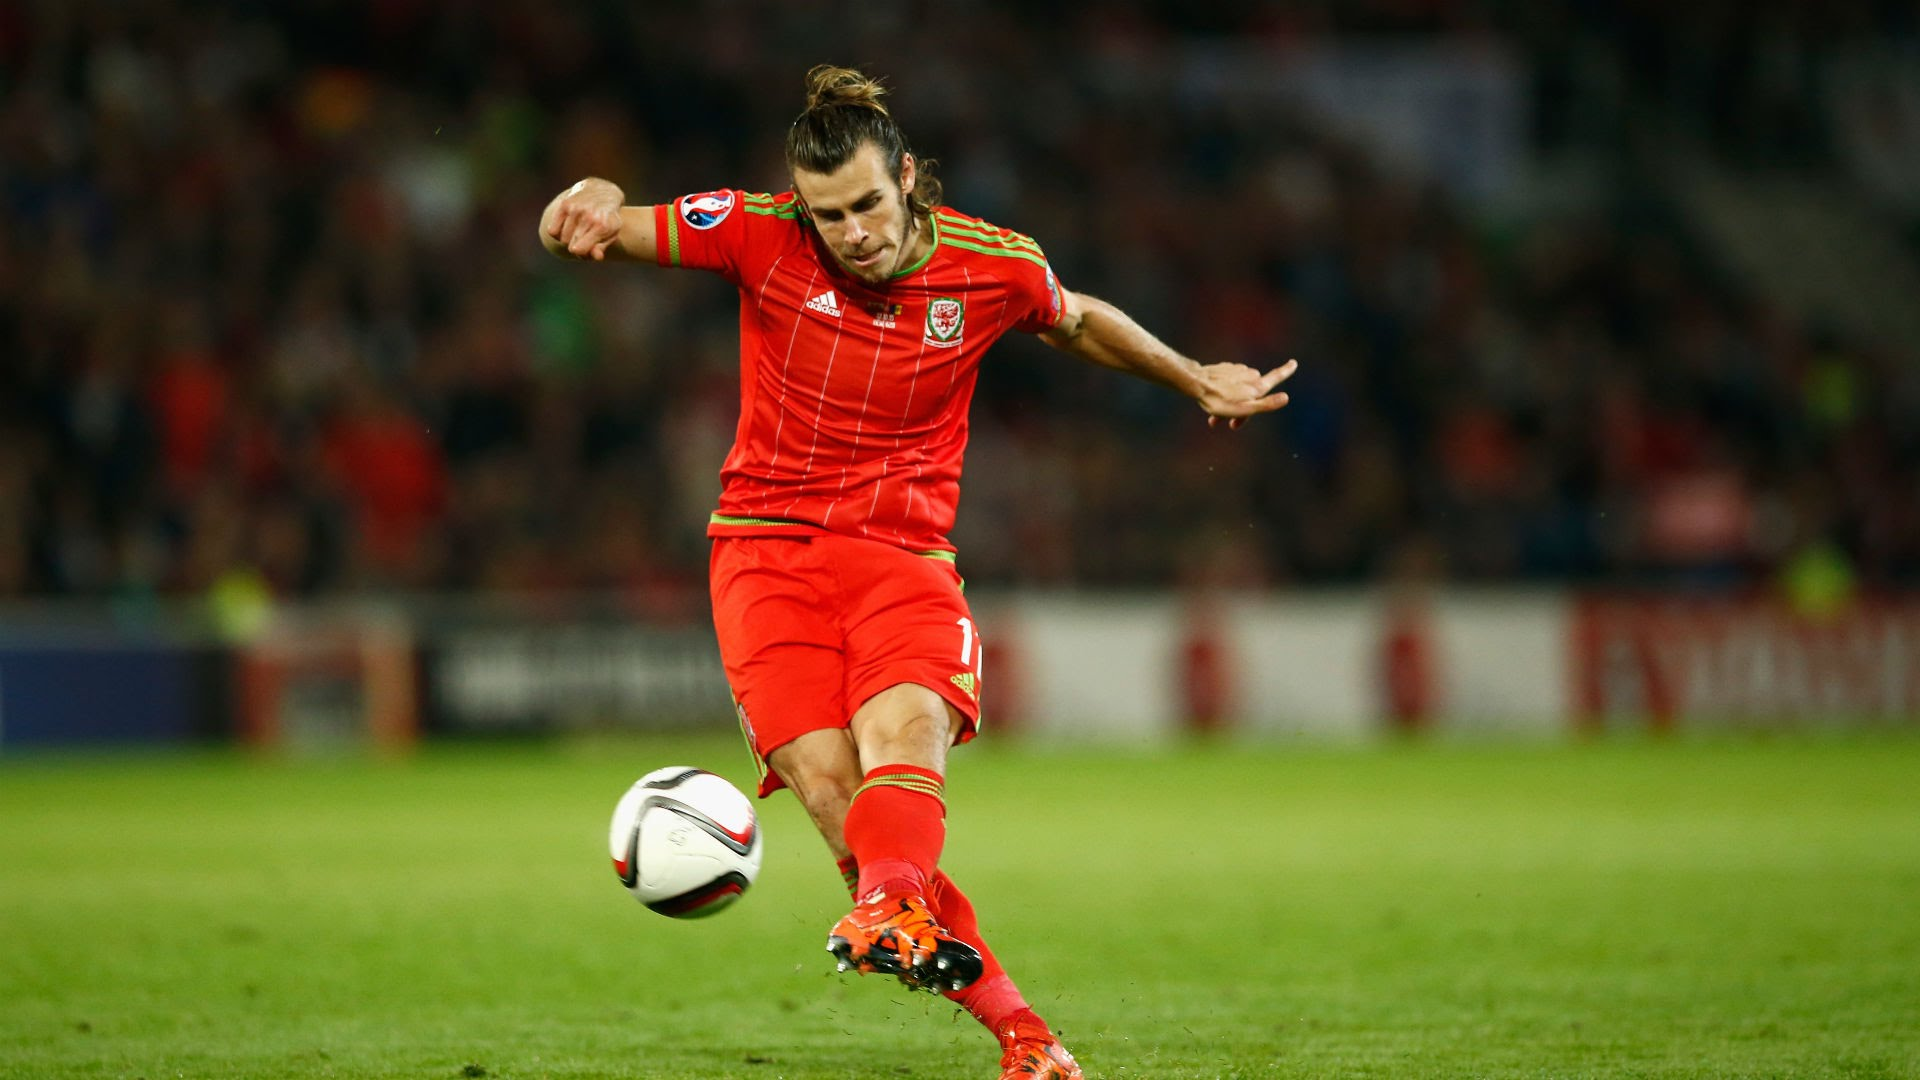 download gareth bale best hd wallpaper